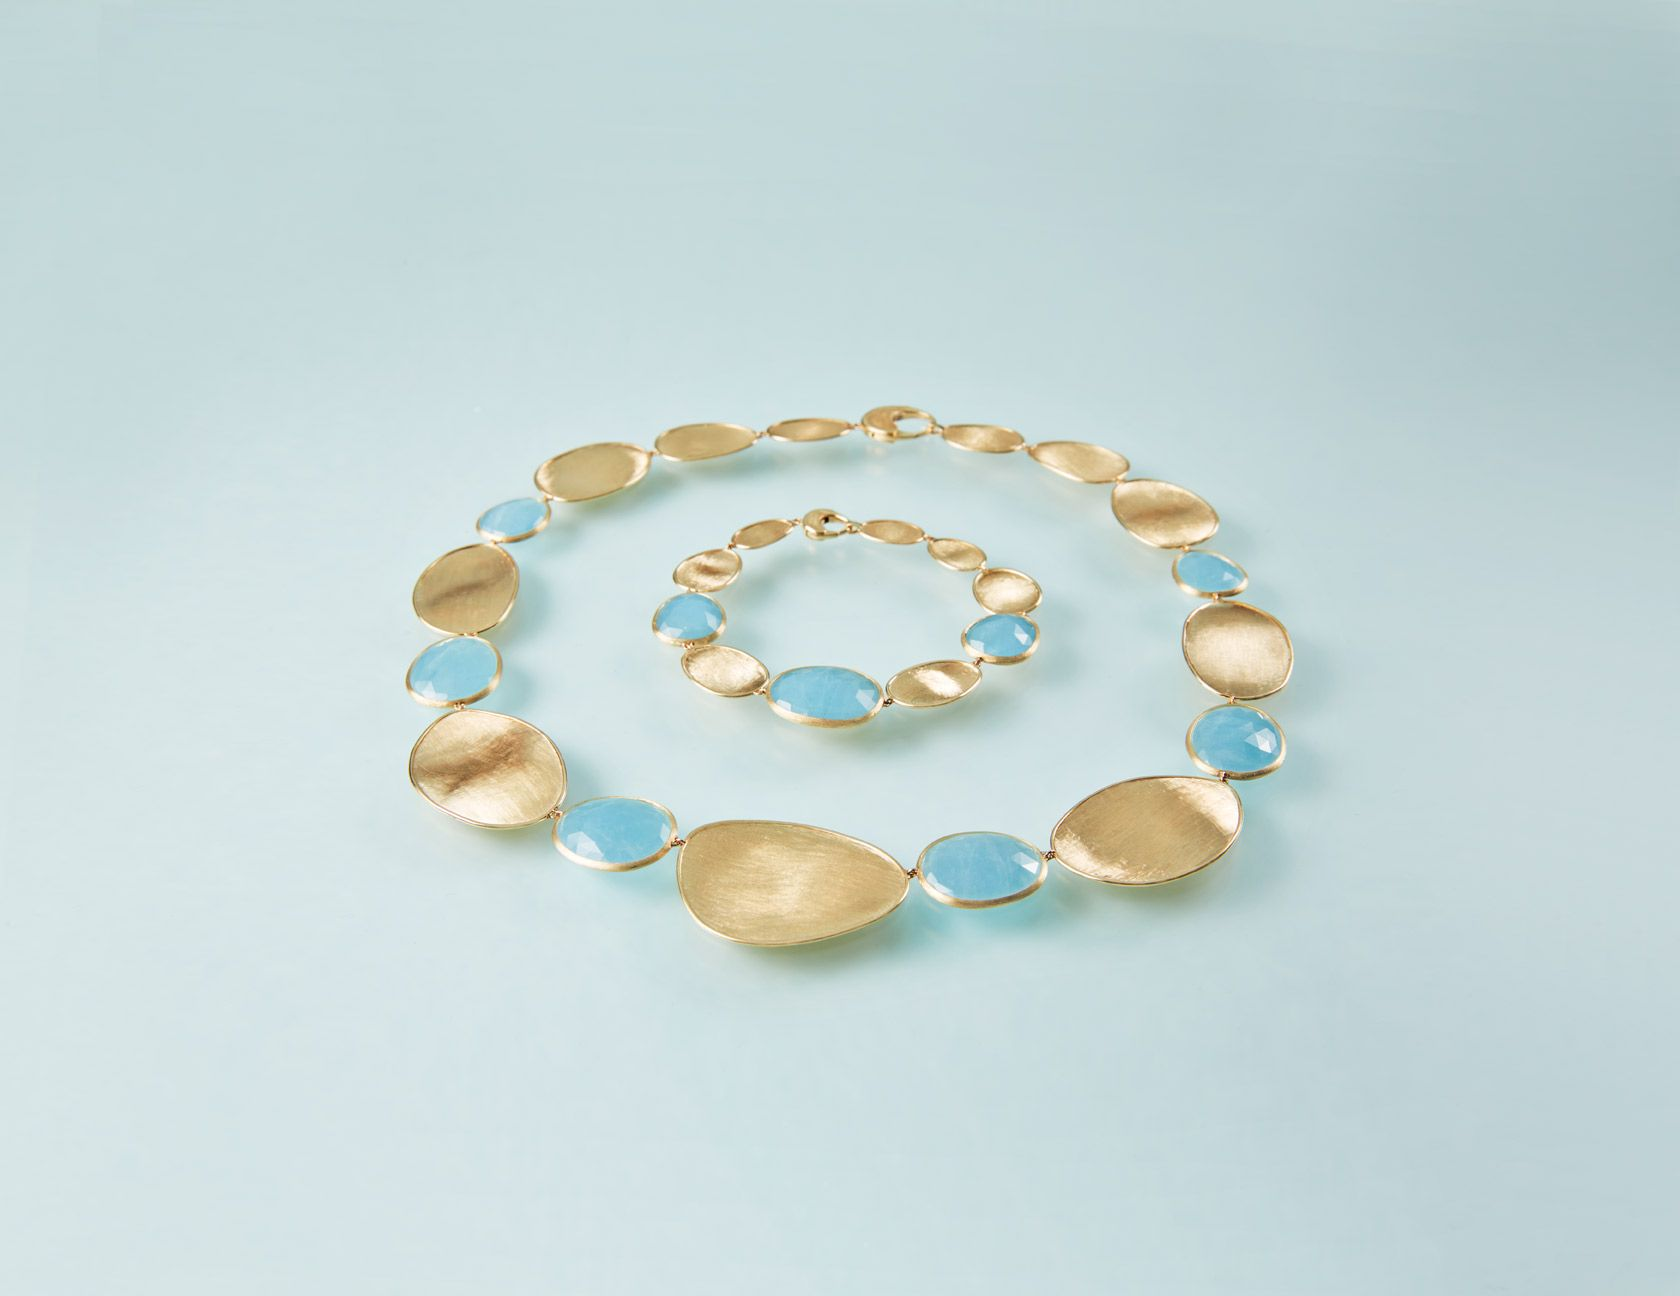 Lunaria aquamarine necklace and bracelet